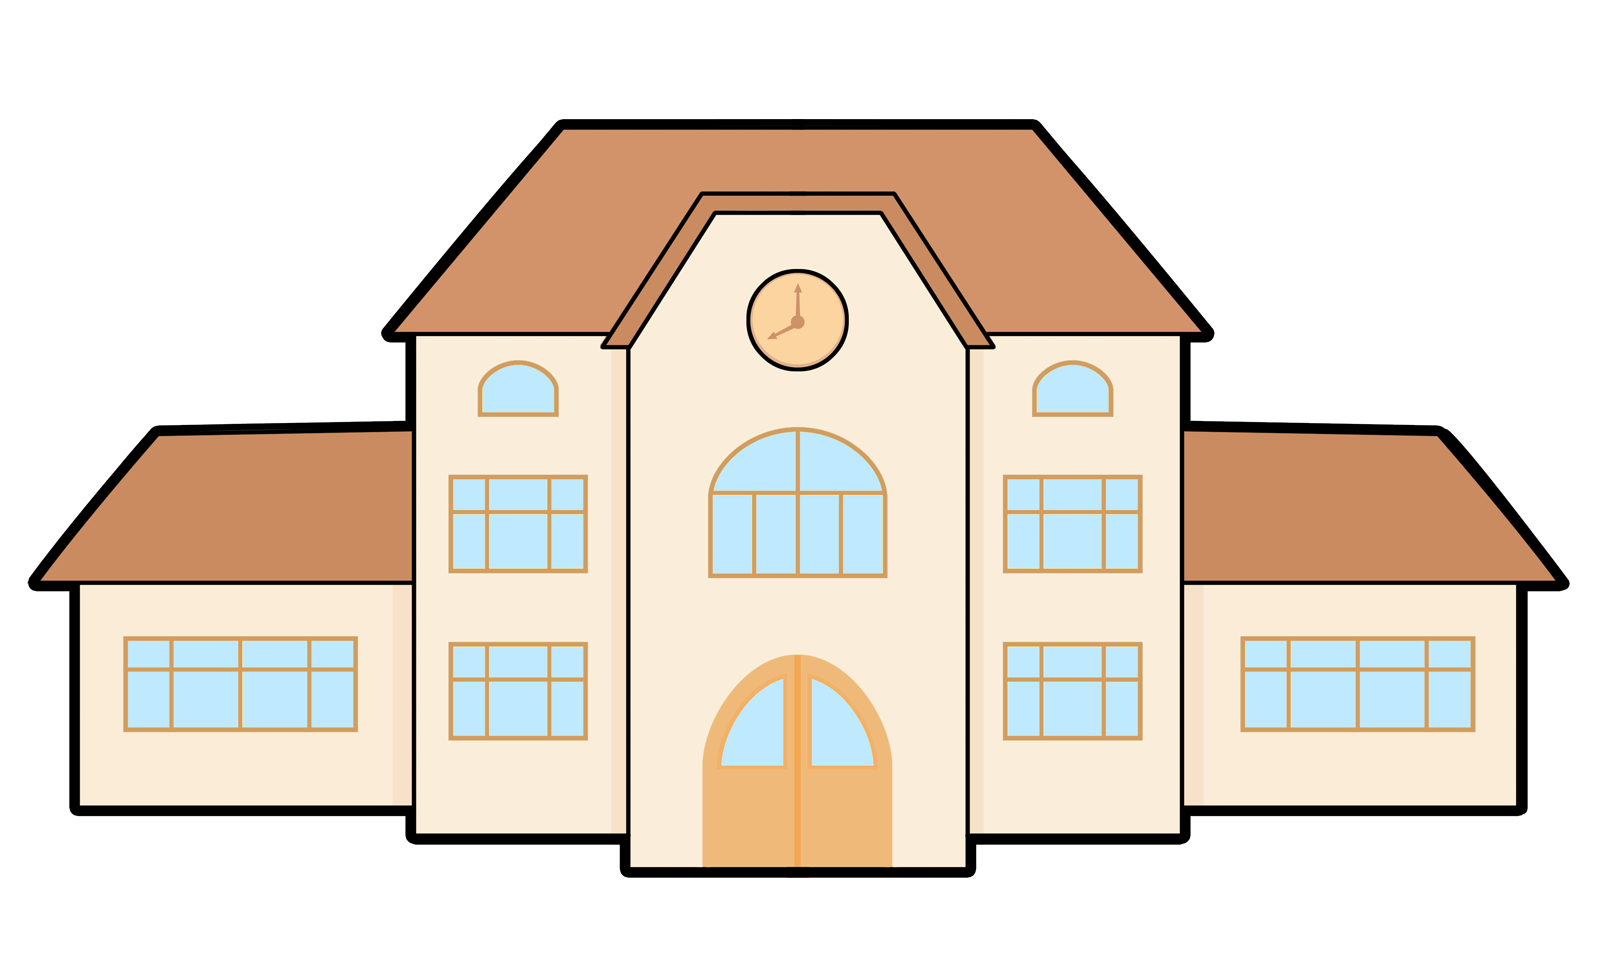 Clipart barn different building. School at getdrawings com